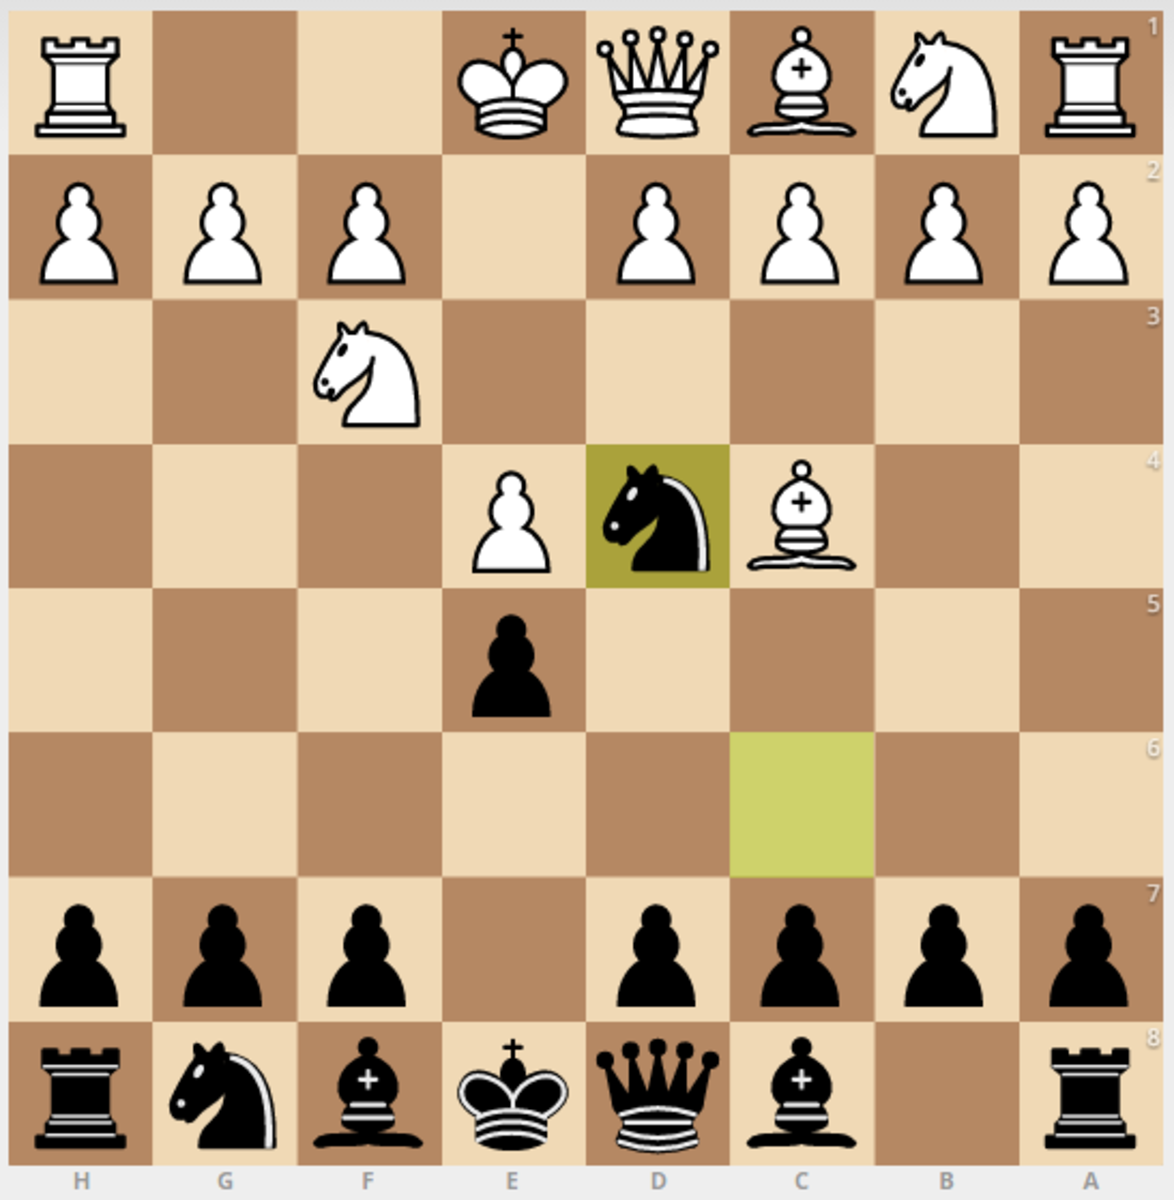 Easy Chess Trap For Beginners - The Blackburne-Shilling Gambit